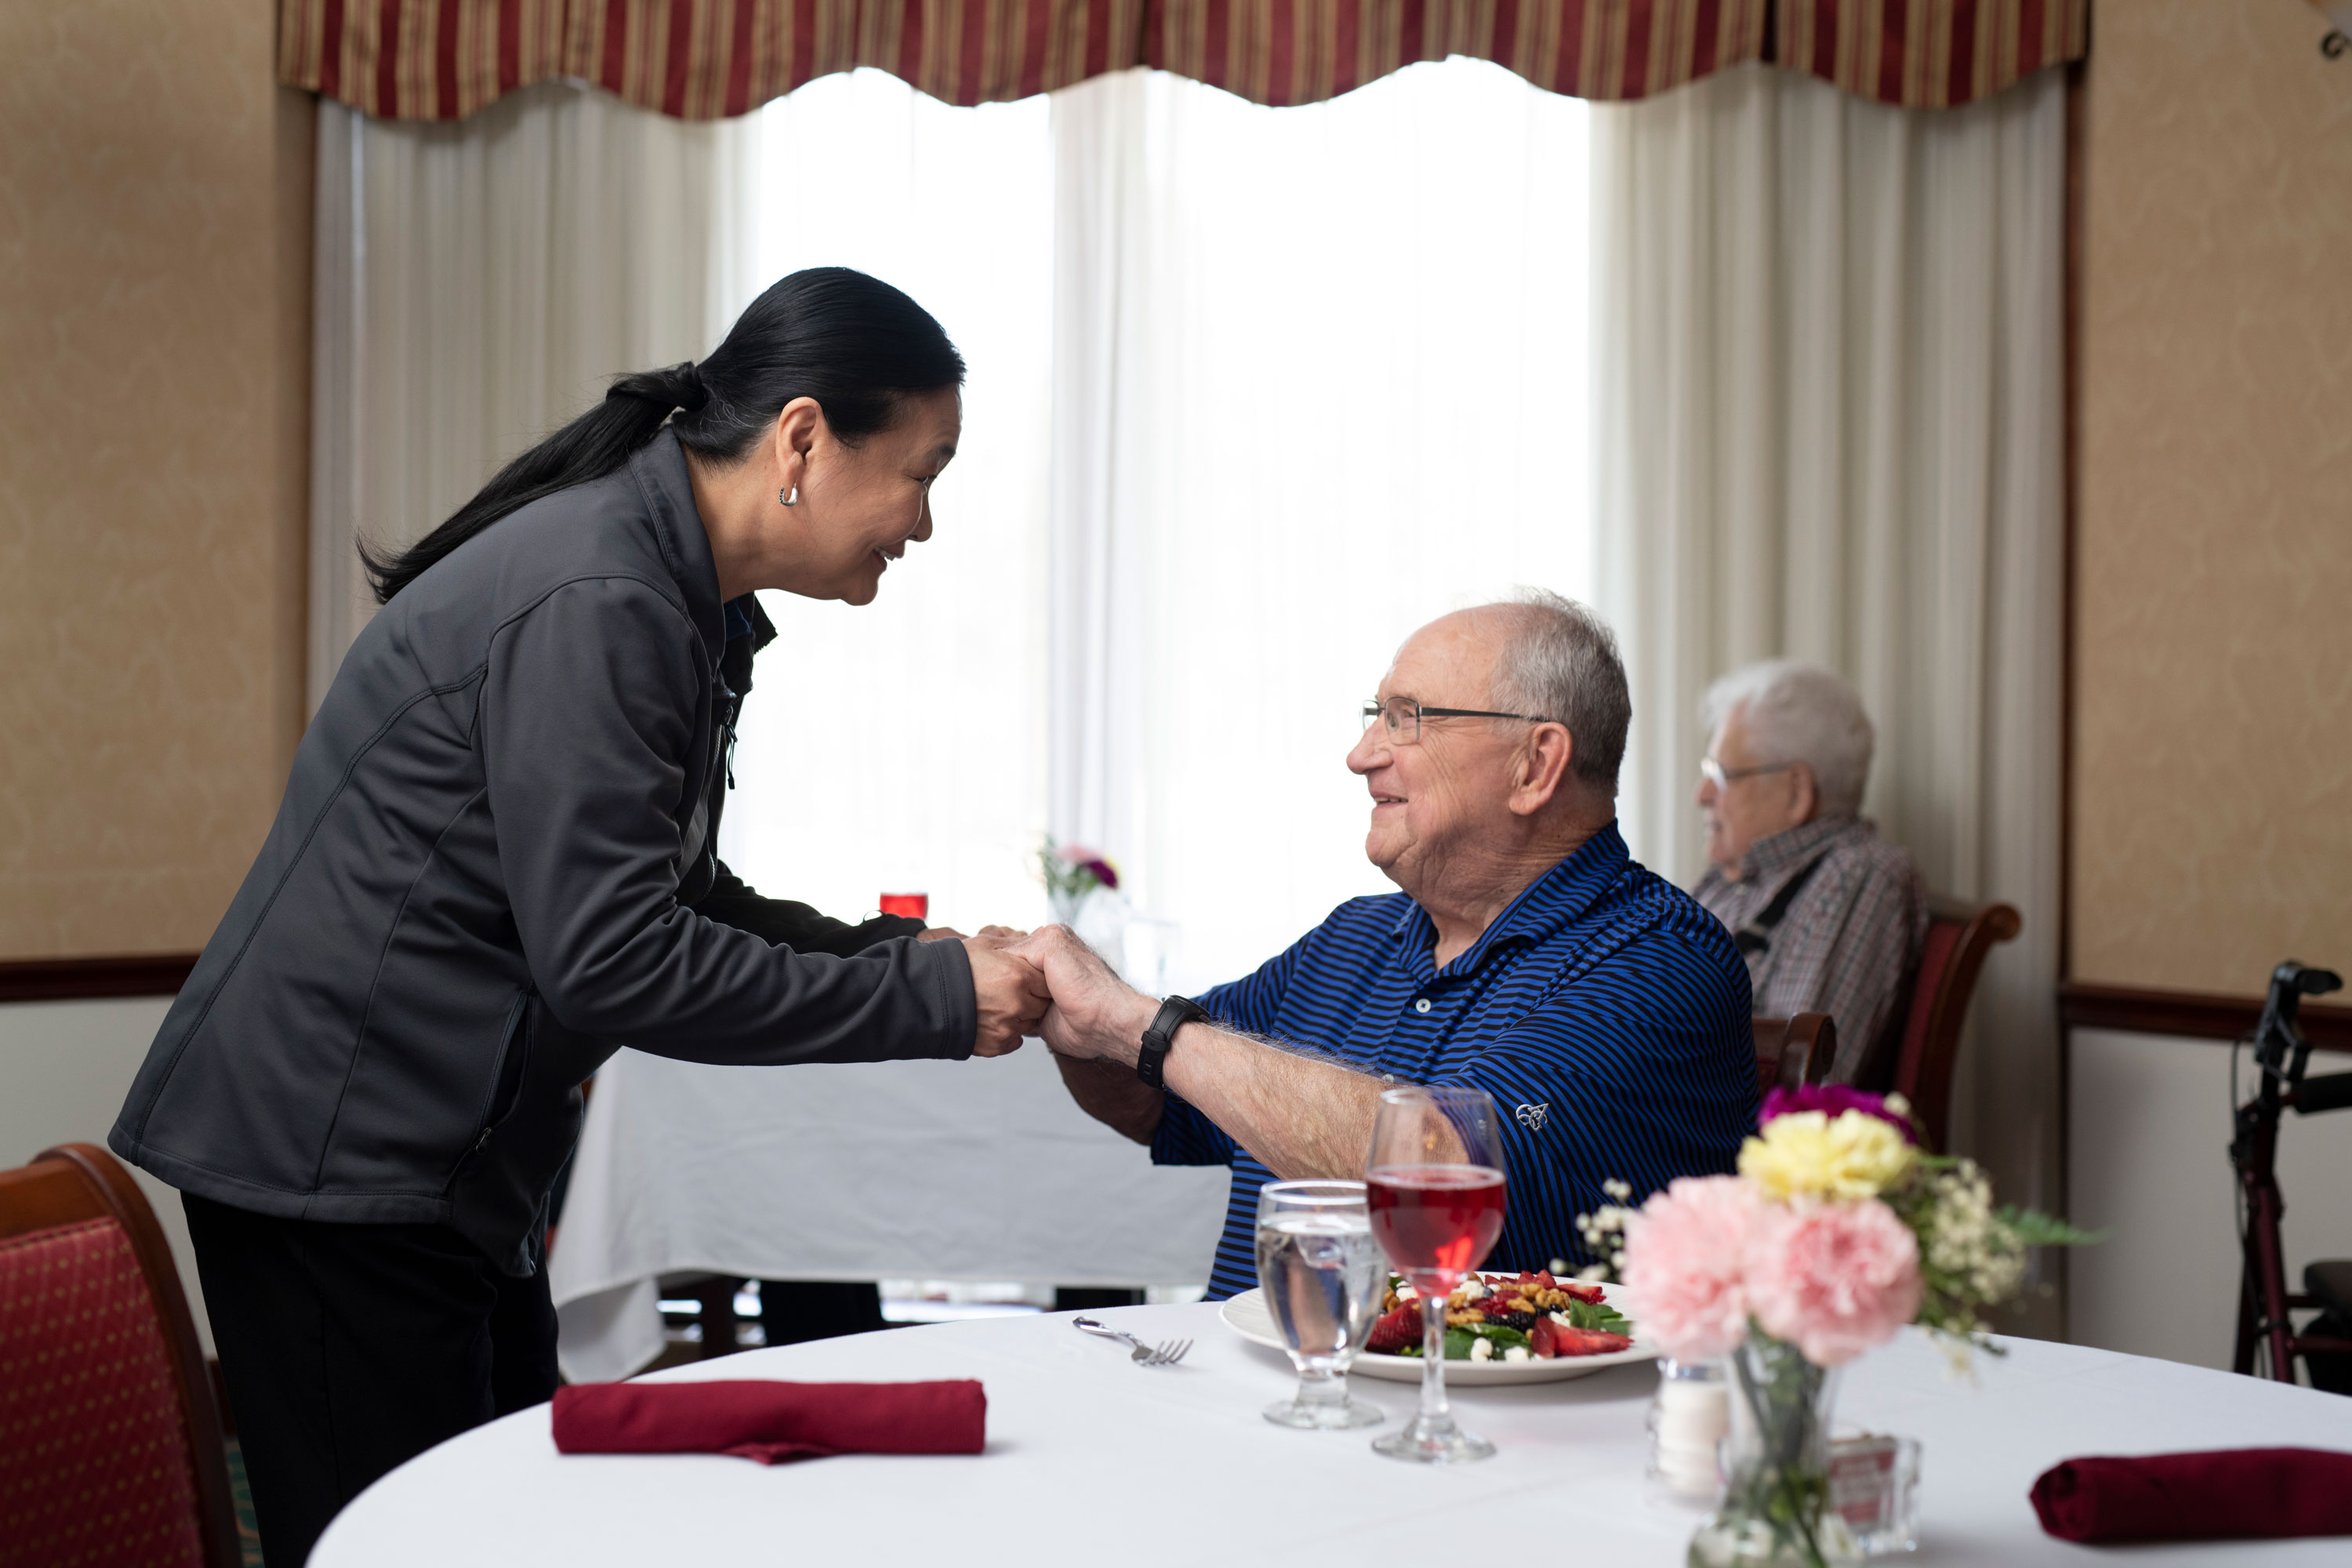 An elderly gentleman thanking the chef for his meal at his senior living community